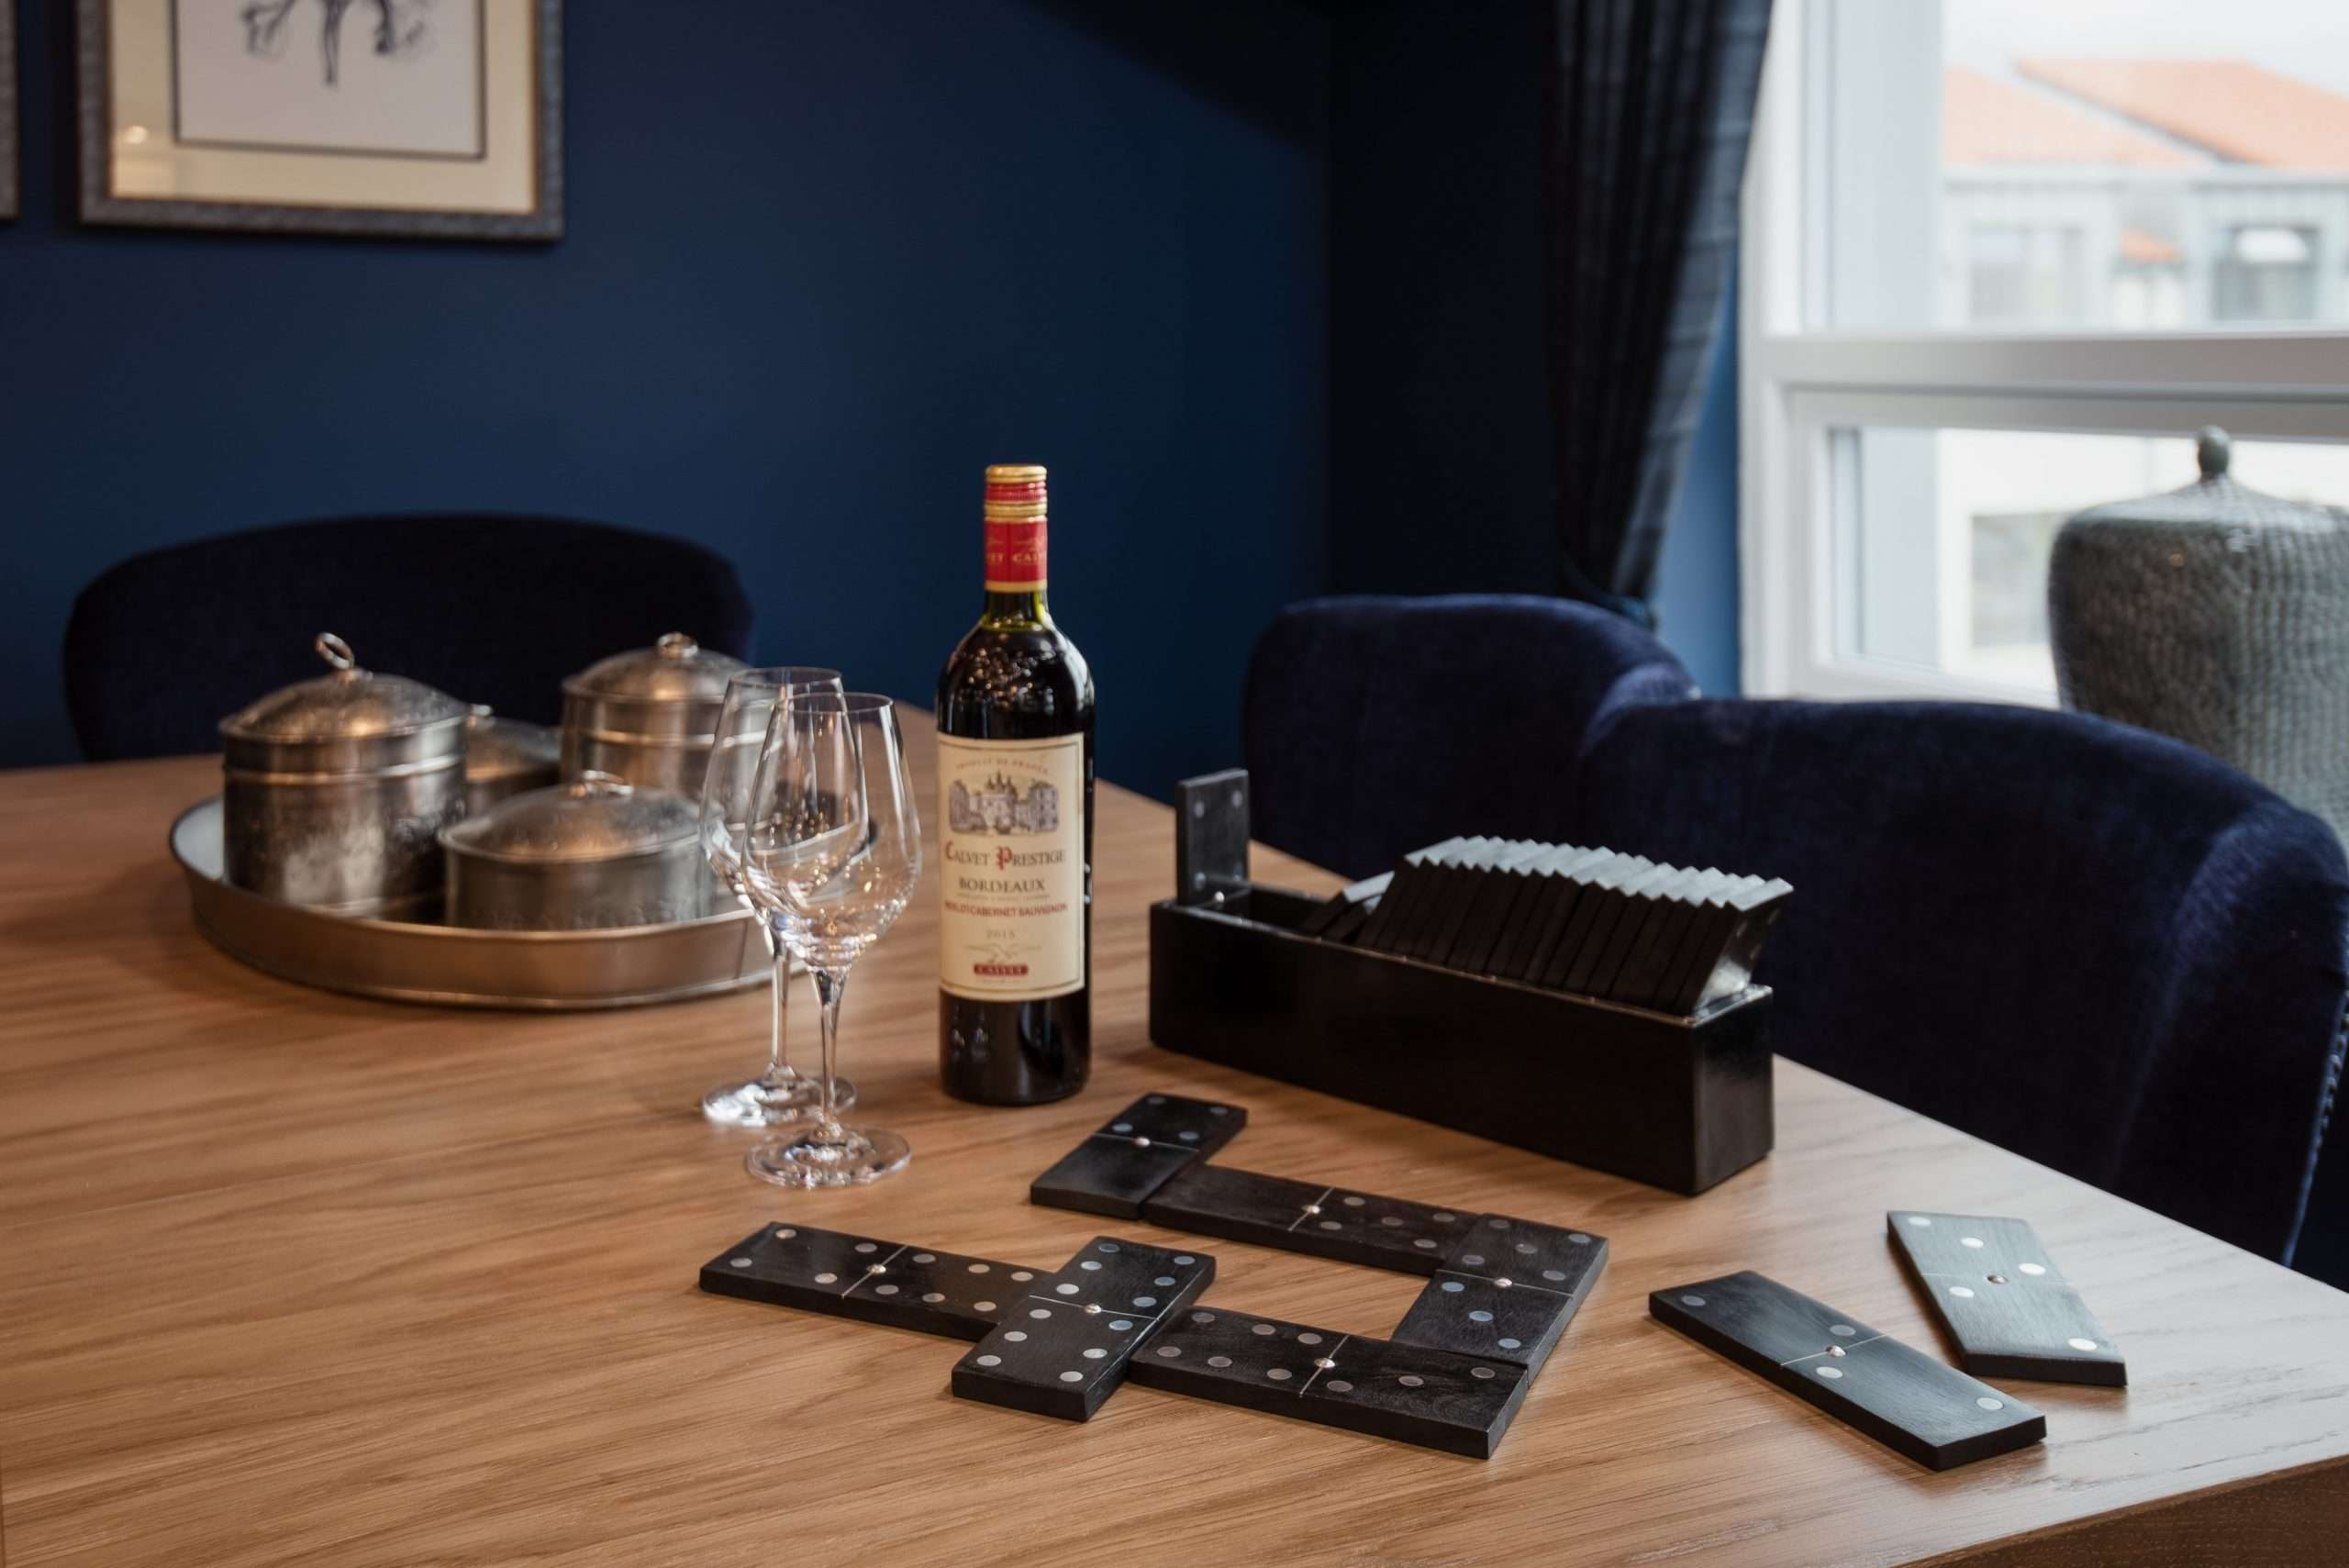 Dominos and wine in games room